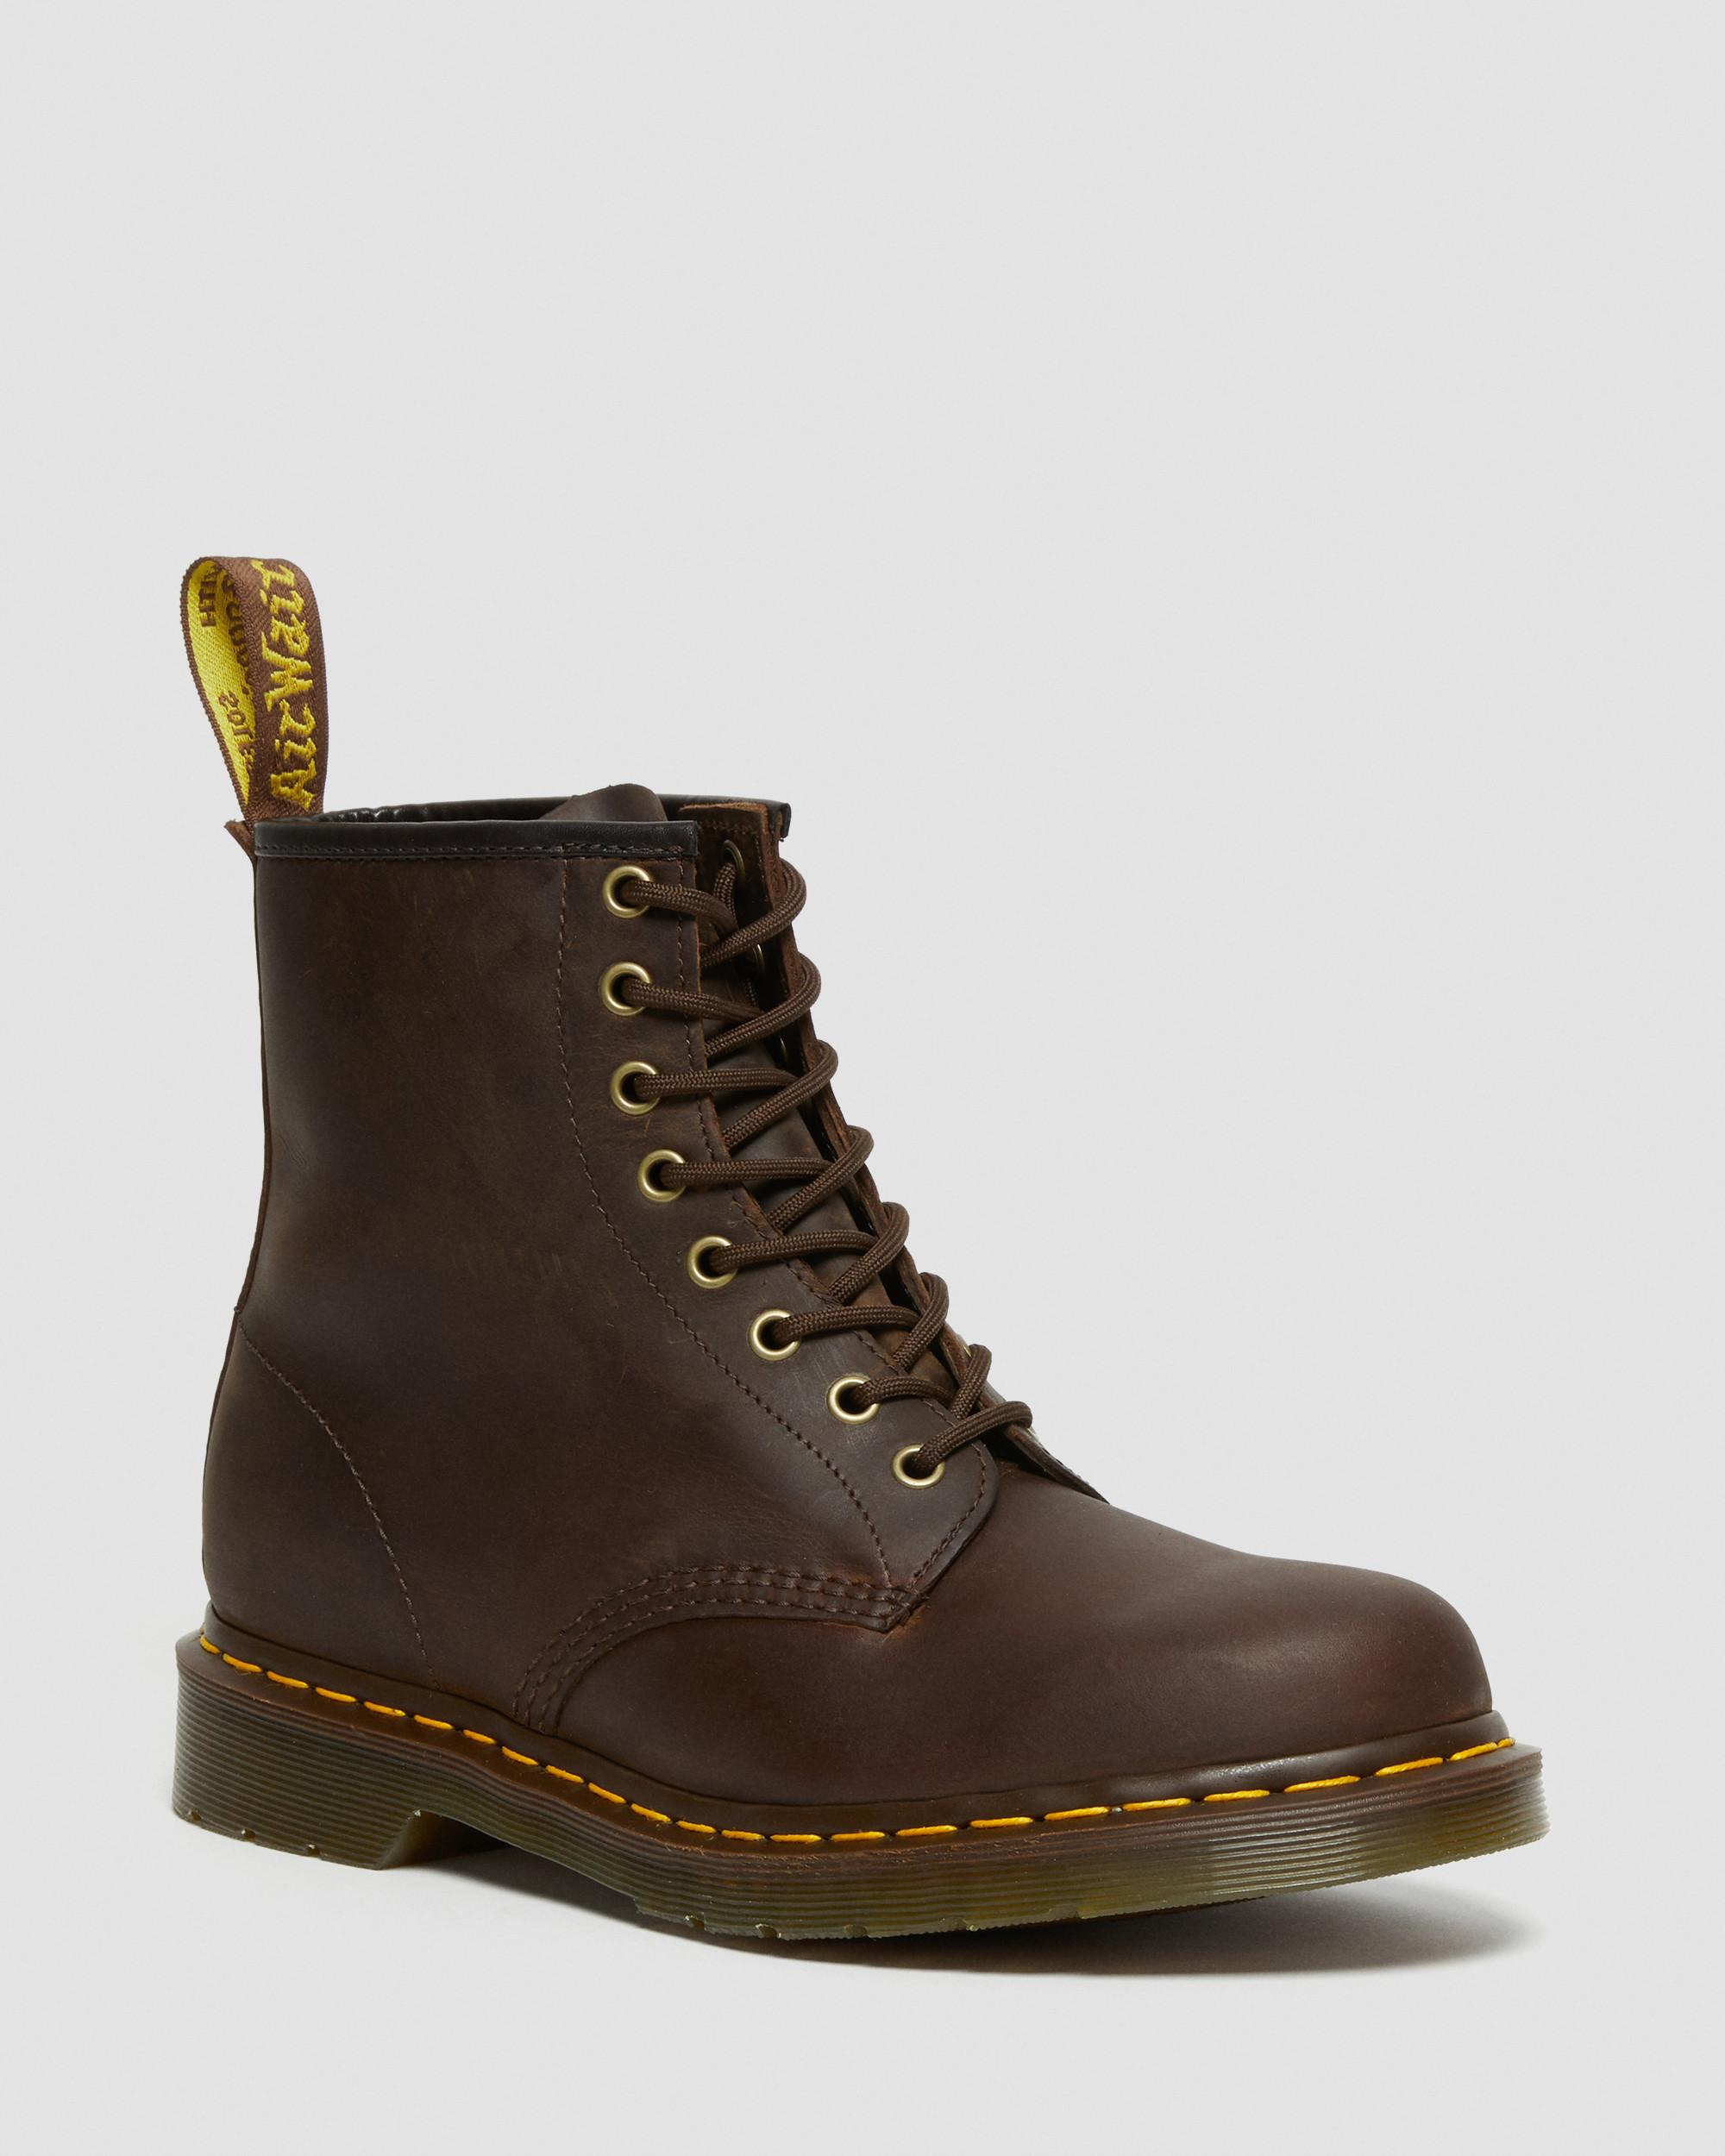 DR MARTENS 1460 LEATHER ANKLE BOOTS